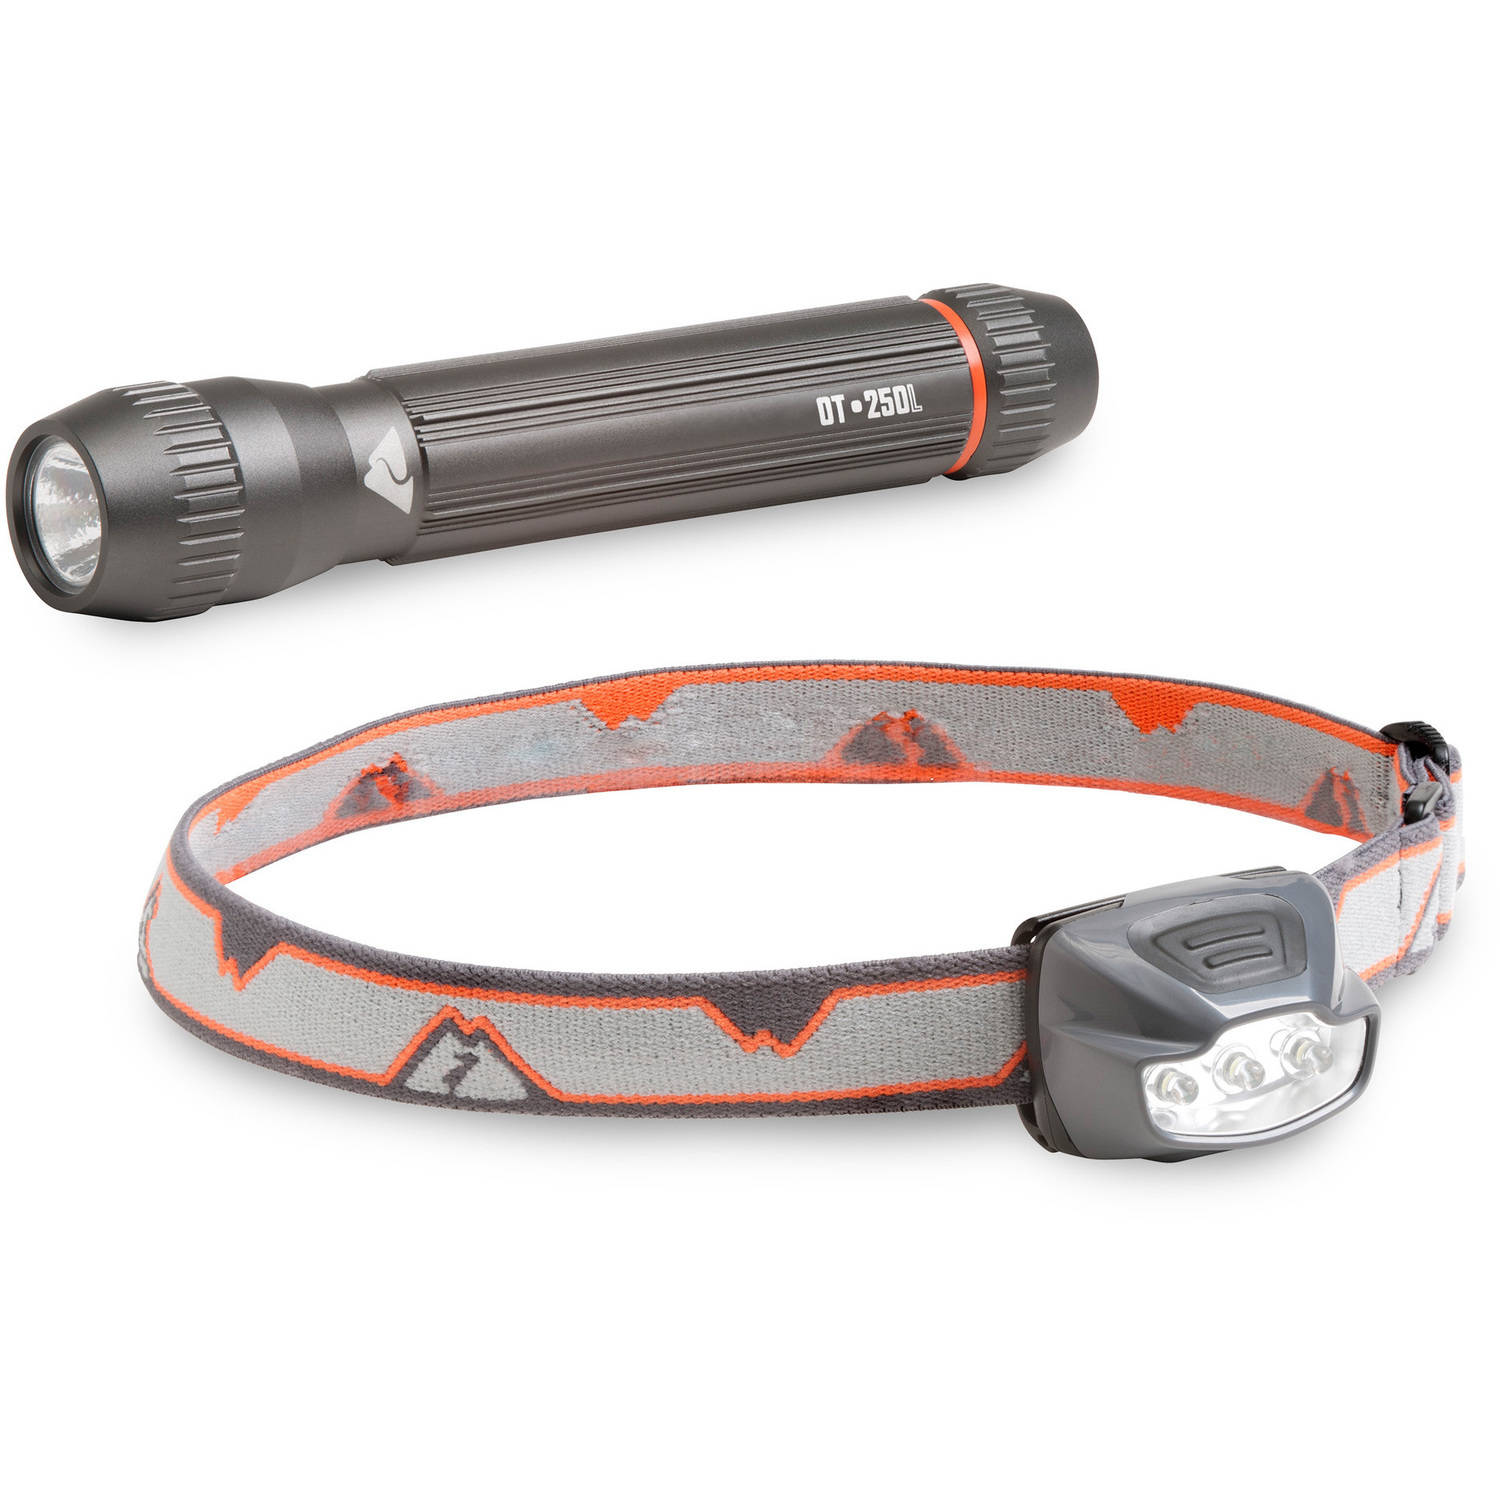 Ozark Trail Headlamp and Flashlight Combo Pack, 50/250 Lumens